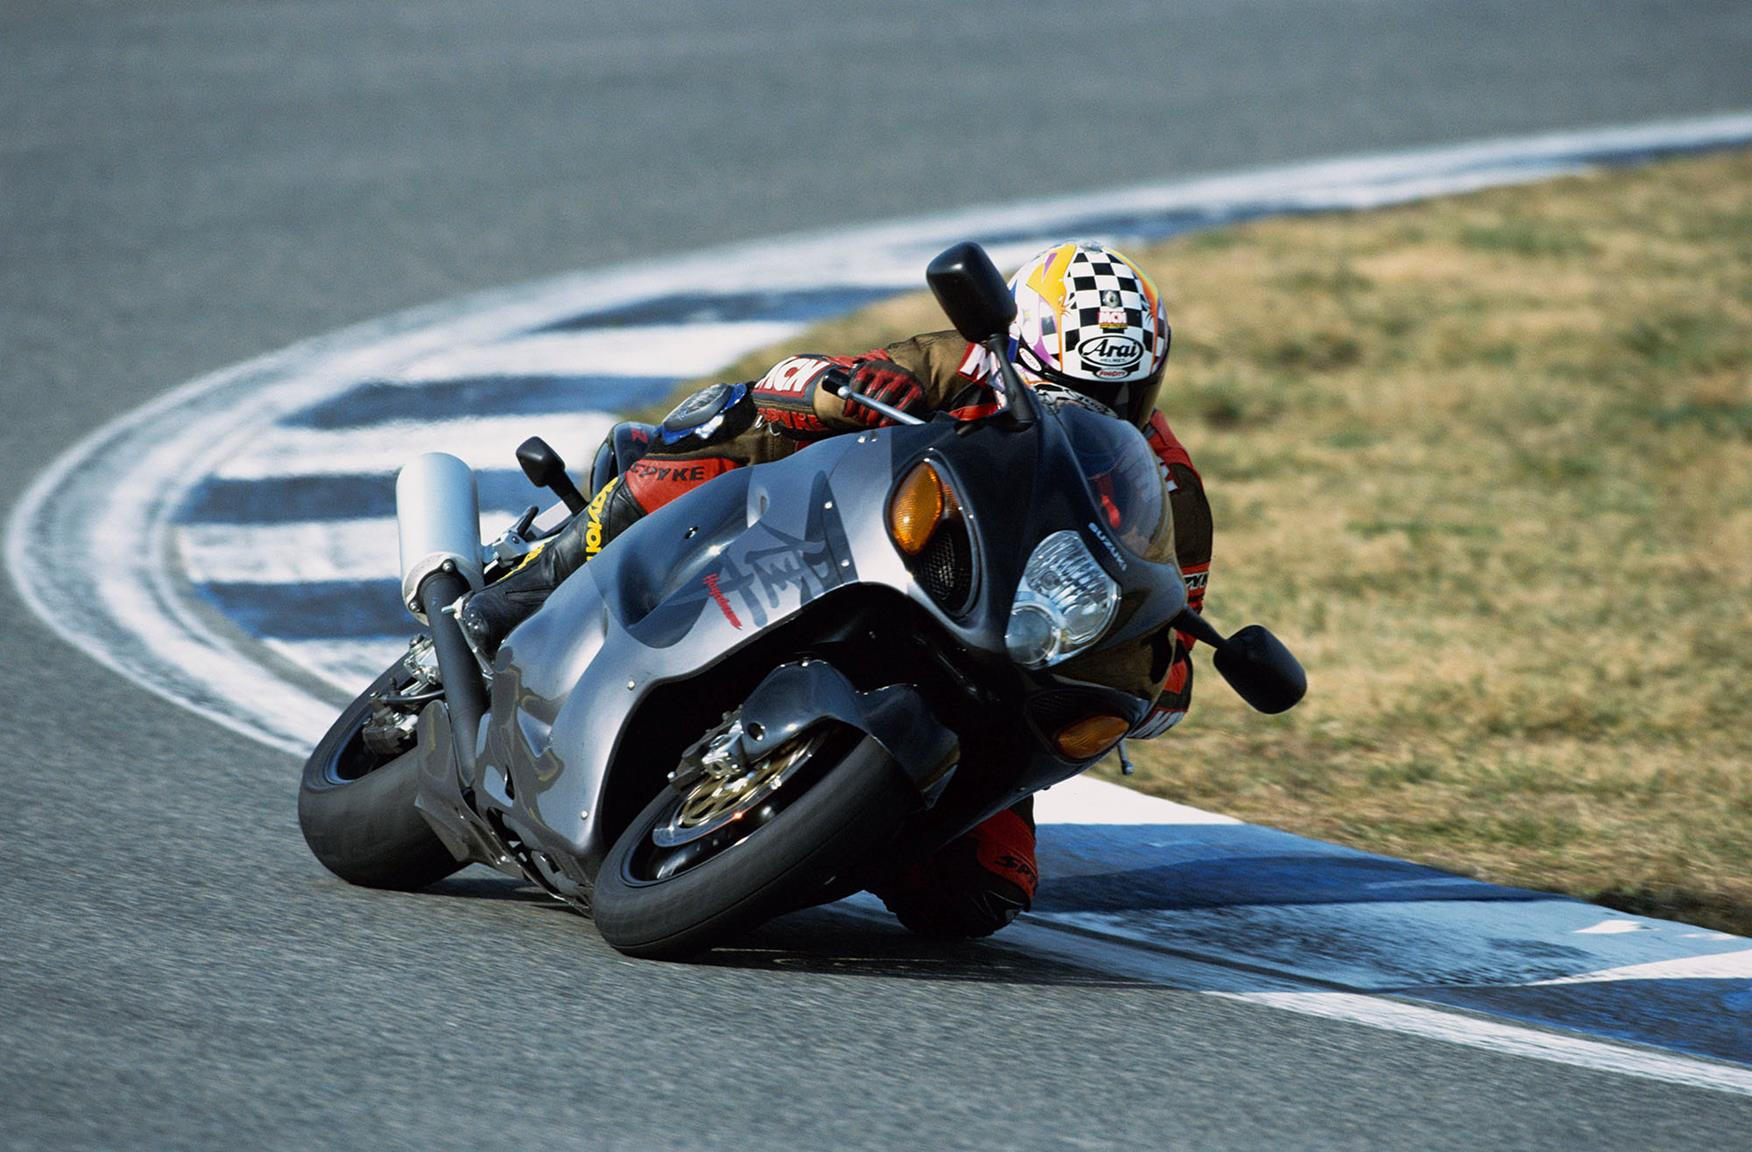 First generation Suzuki Hayabusa on track